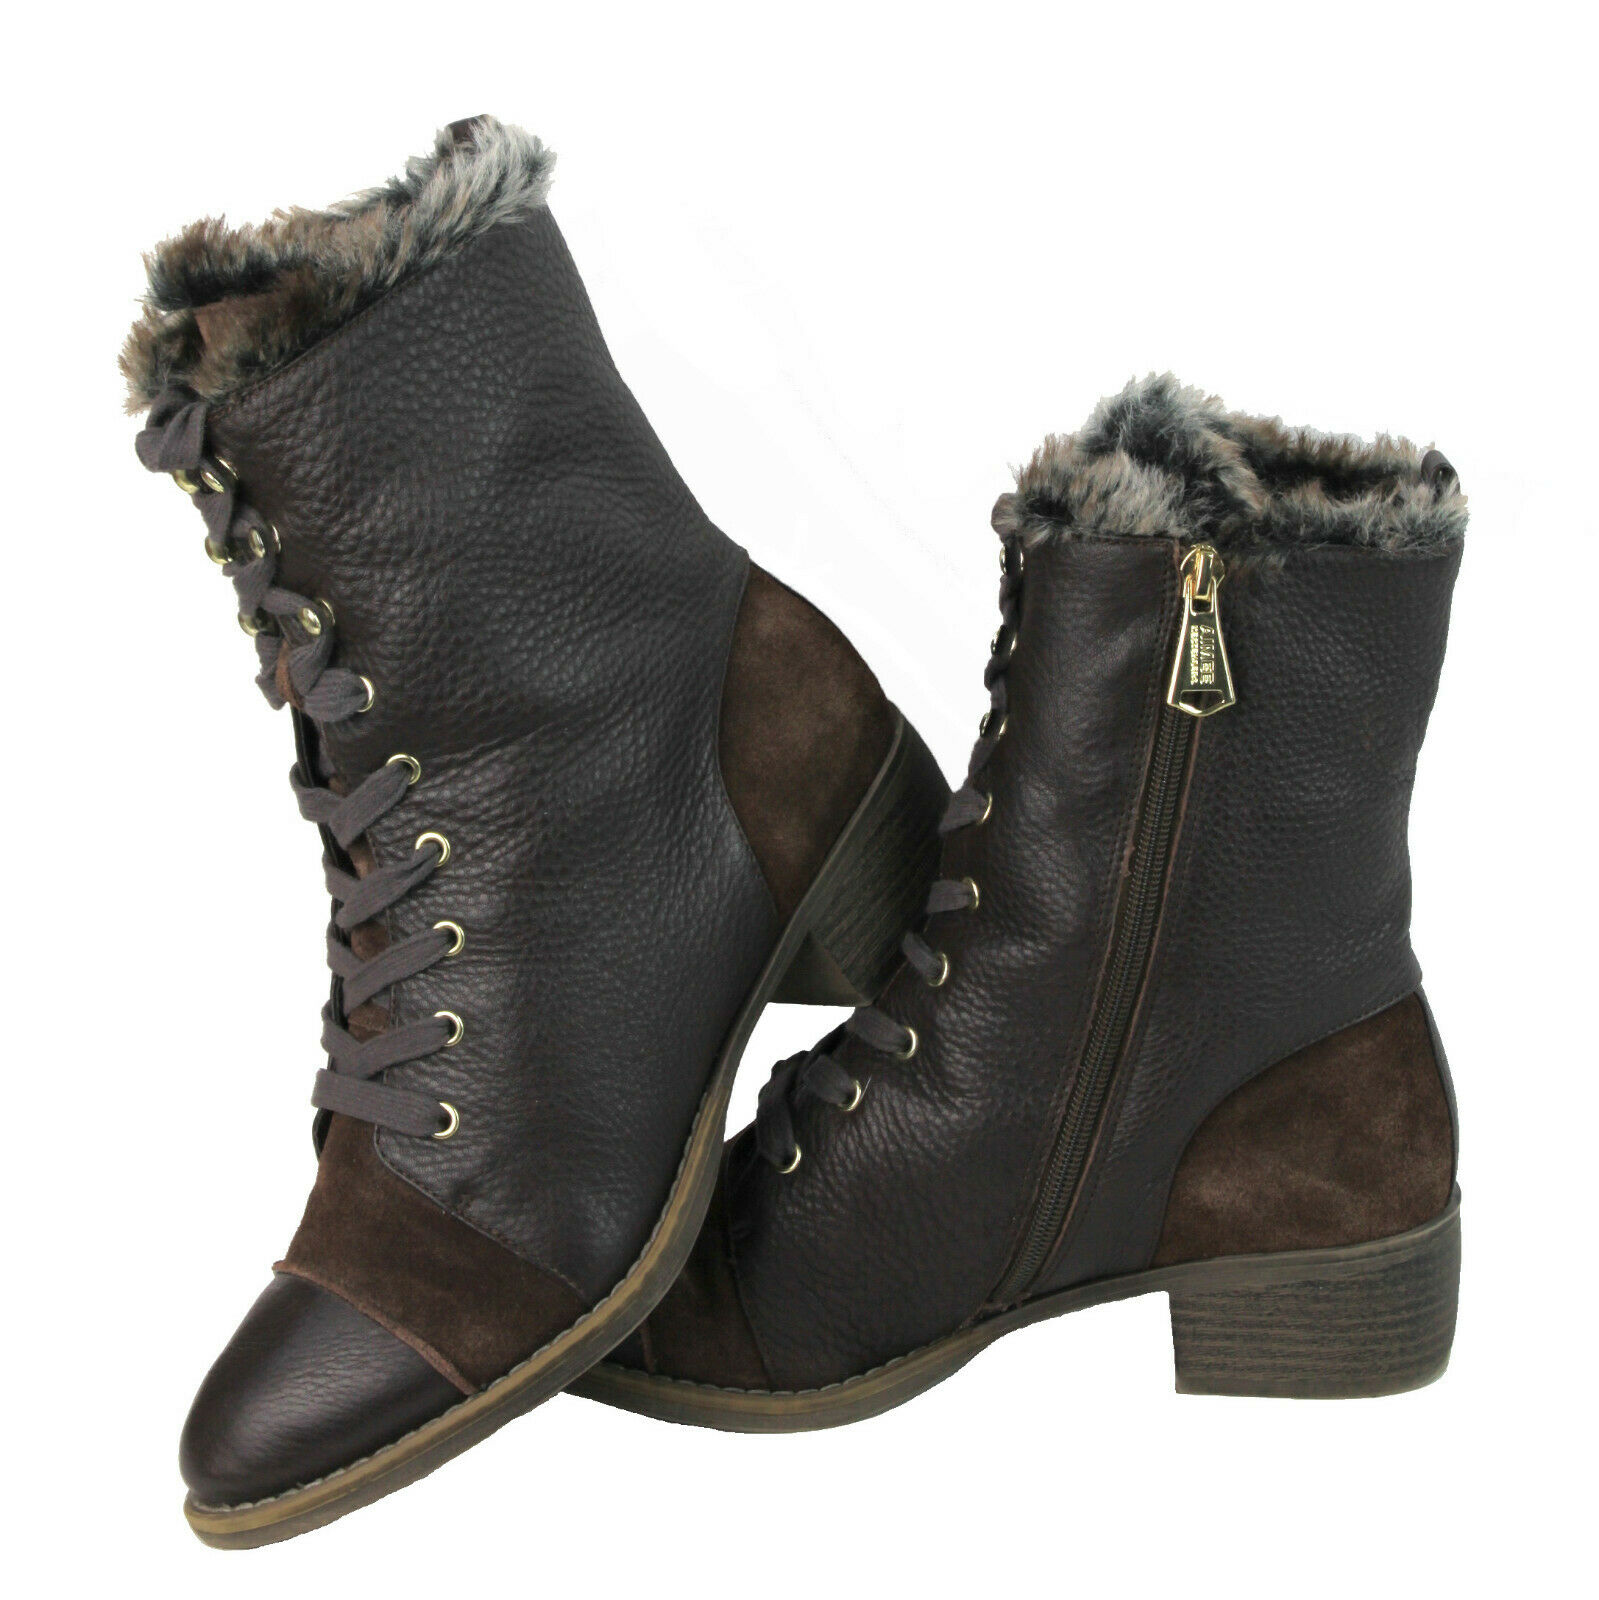 Aimee Kestenberg Leilani Lace Up Faux Fur Boot Chocolate Brown Leather Size 9 M